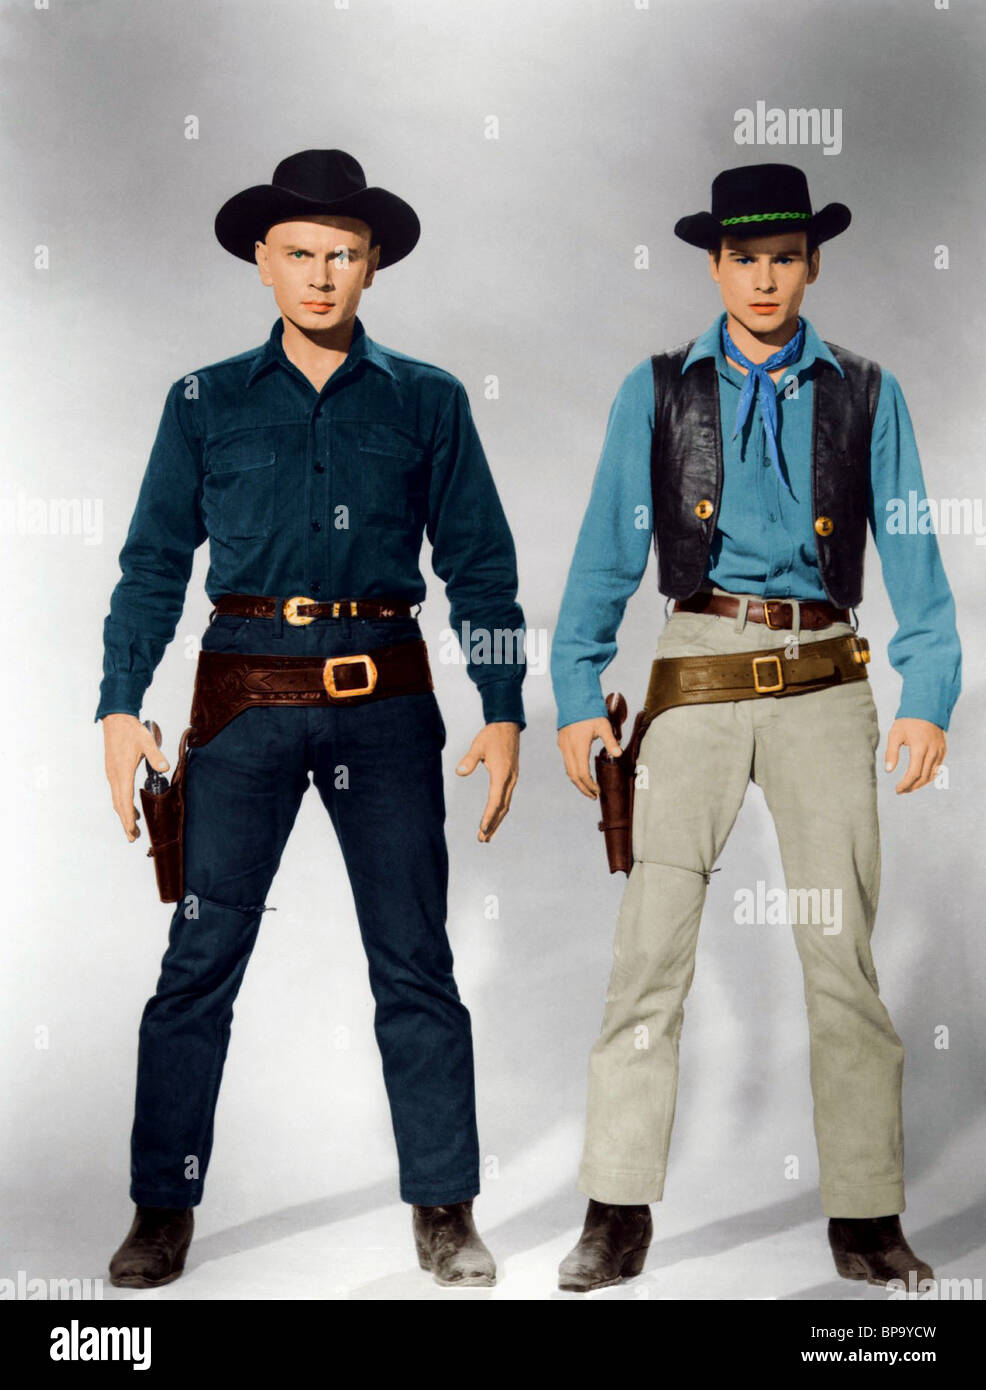 YUL BRYNNER, HORST BUCHHOLZ, THE MAGNIFICENT SEVEN, 1960 ...